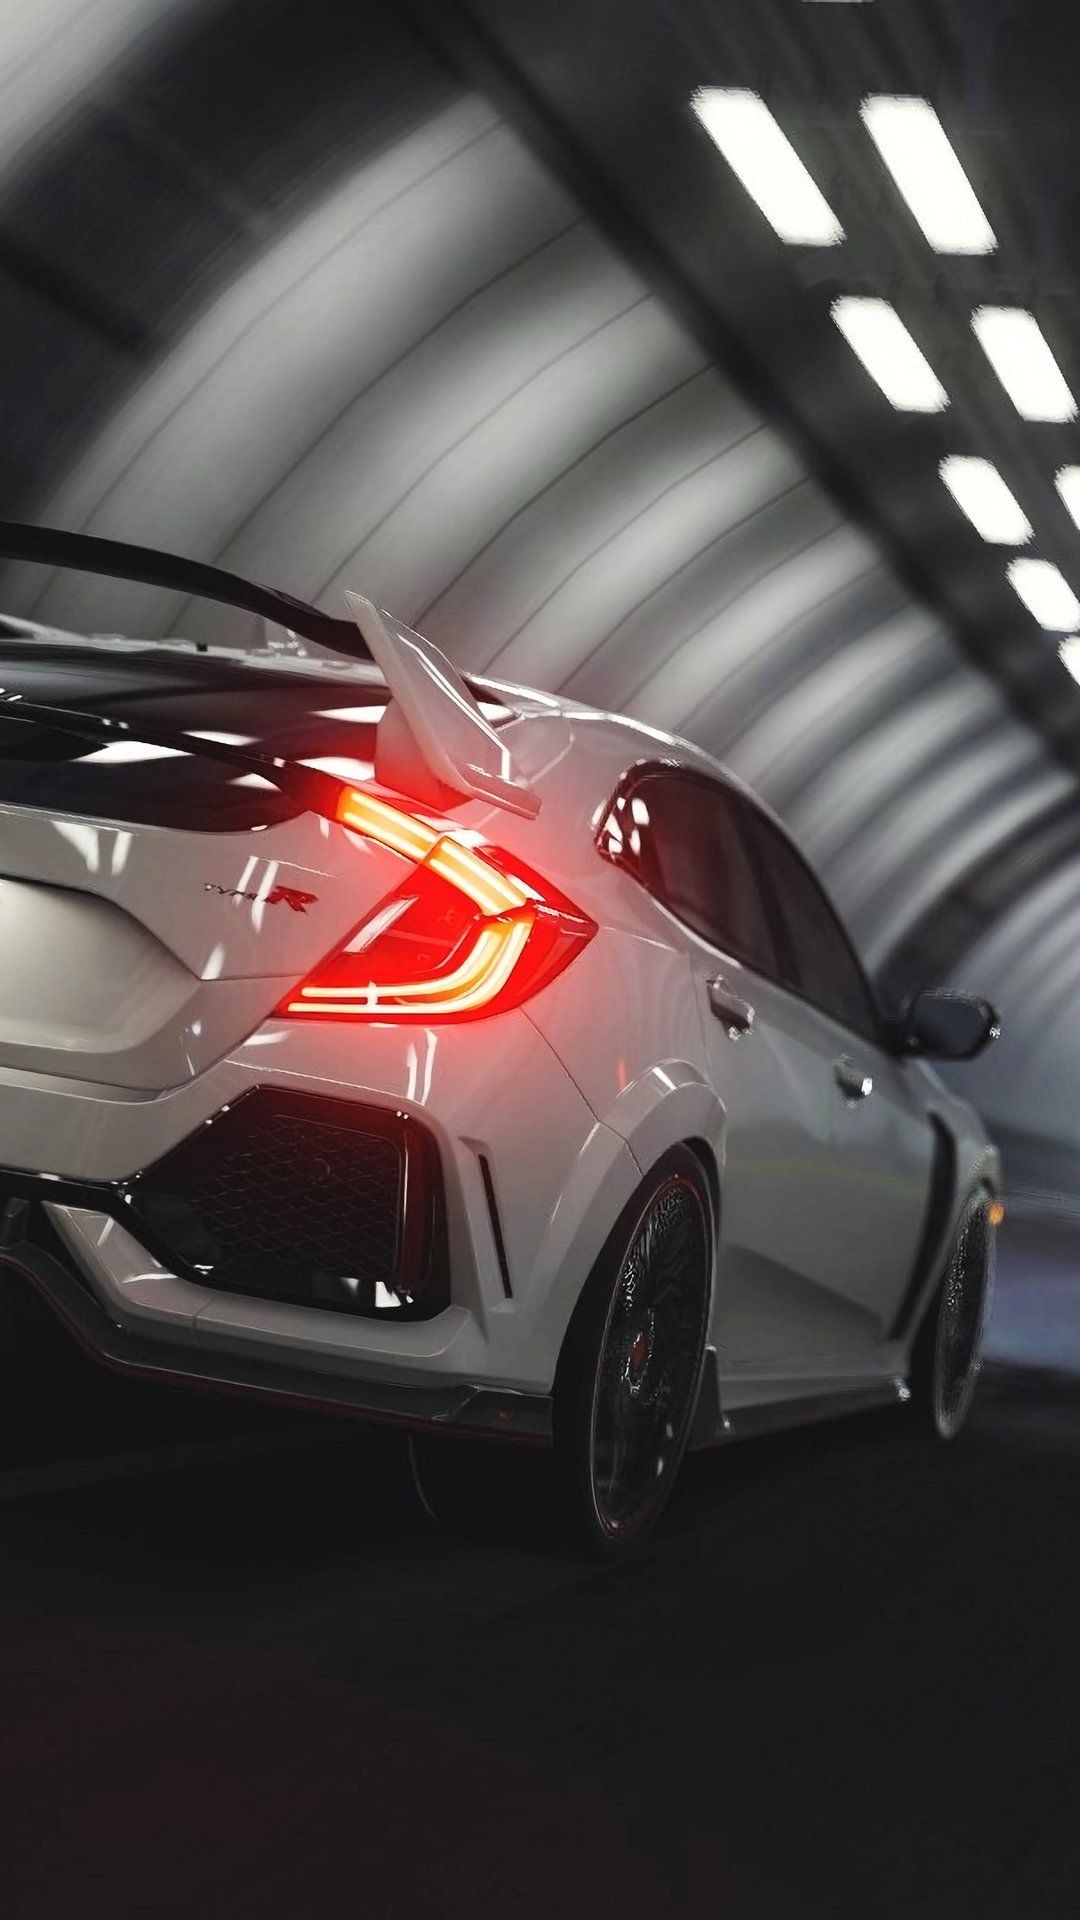 A collection of the top 68 ultra hd car wallpapers and backgrounds available for download for free. Honda Type R Honda Civic Type R Car Wallpapers Hd Wallpapers Book Your 1 Source For Free Download Hd 4k High Quality Wallpapers